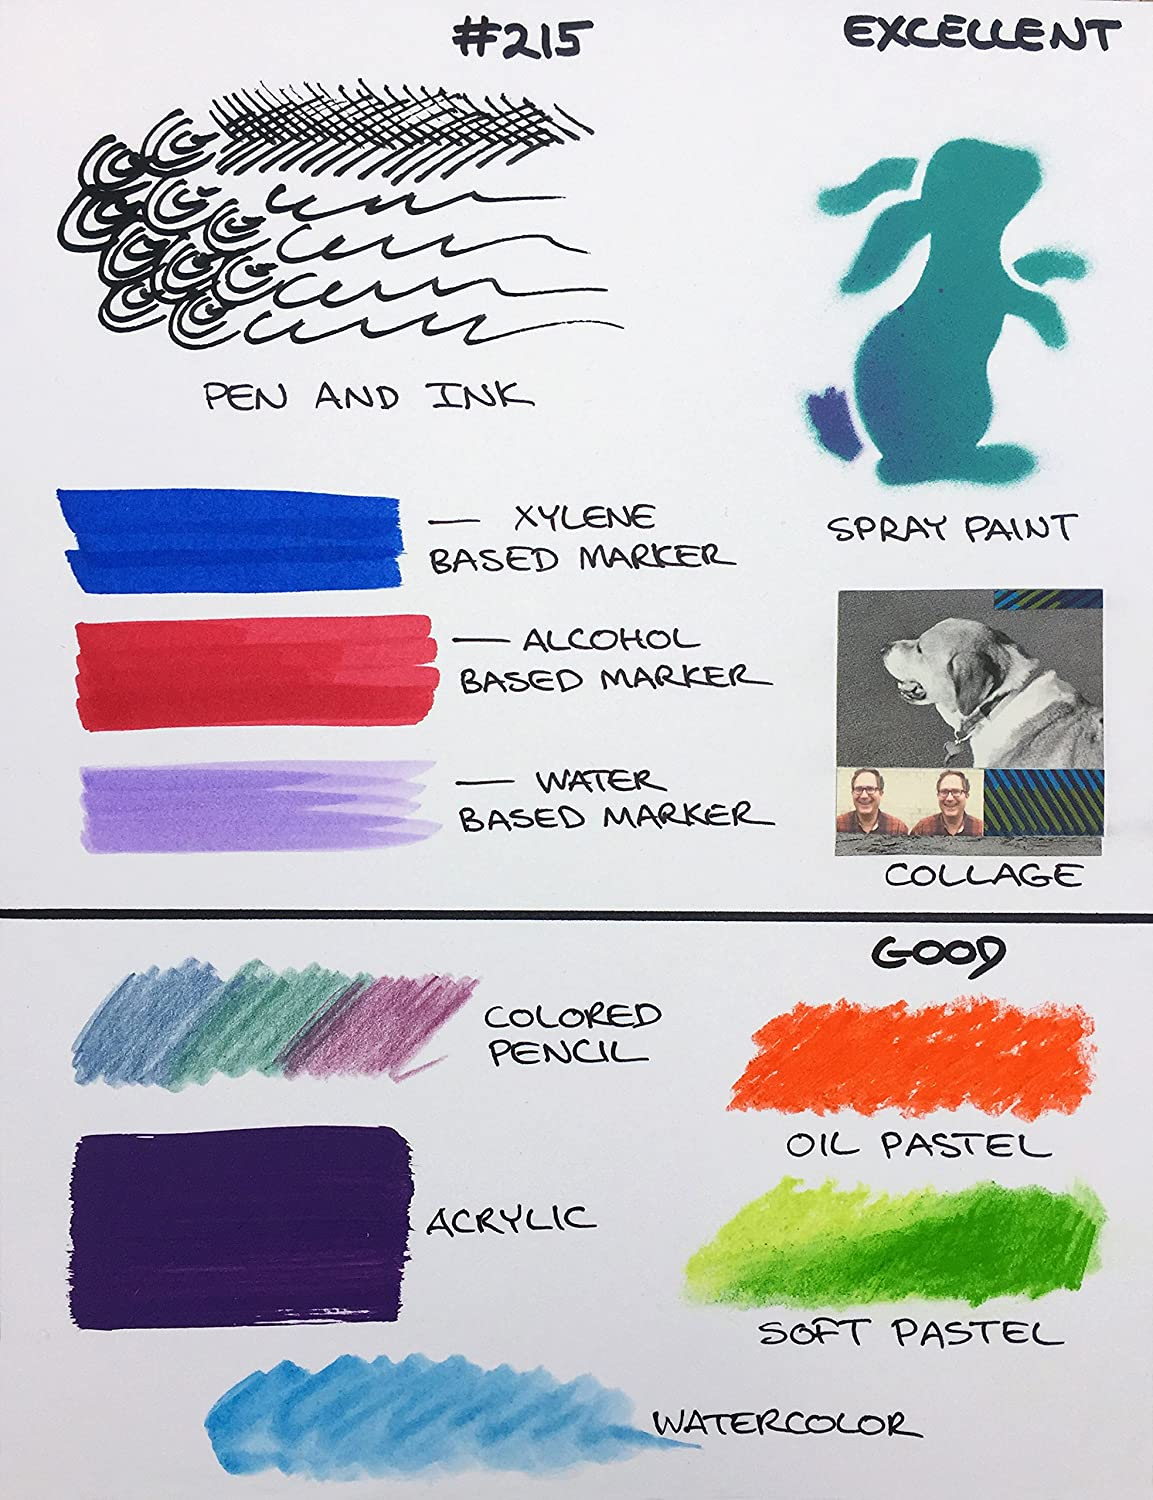 Board White 3 Pack 11 X 14 Crescent Creative Products 215-1114 Crescent Art /& Illustration Marker